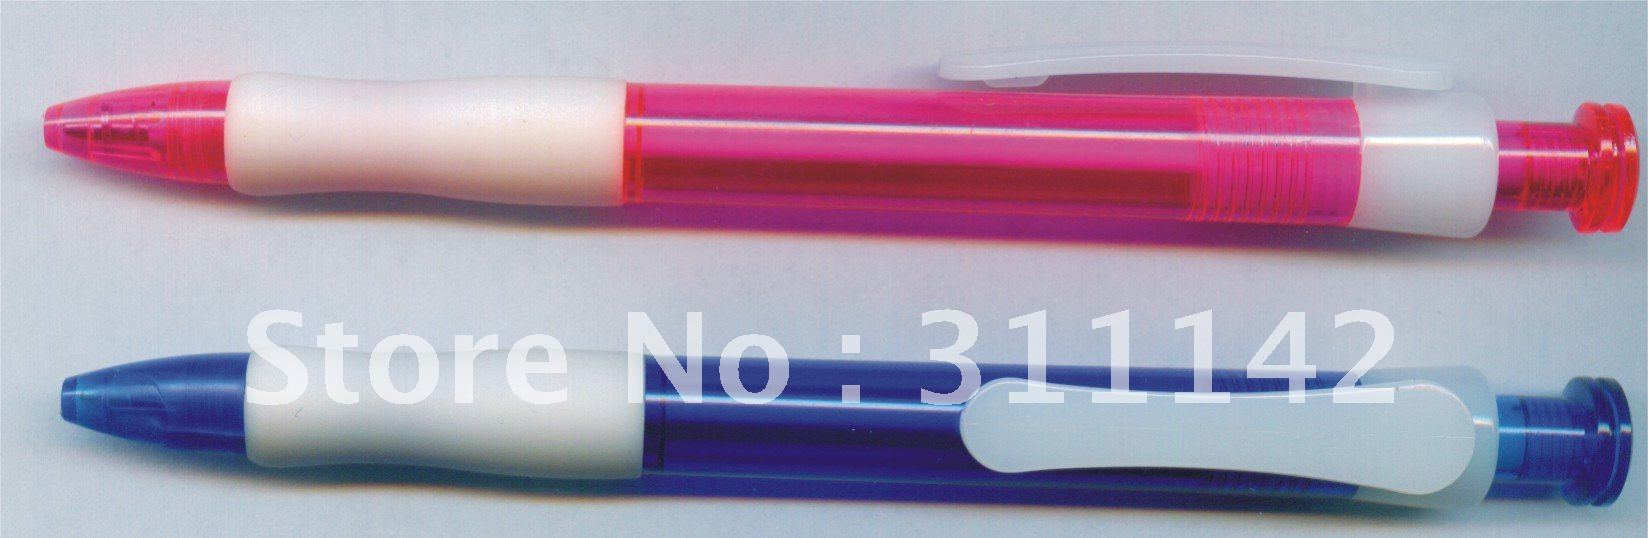 imprinted plastic pens for promotion imprinted 1000pcs with free shipping hot sale<br><br>Aliexpress